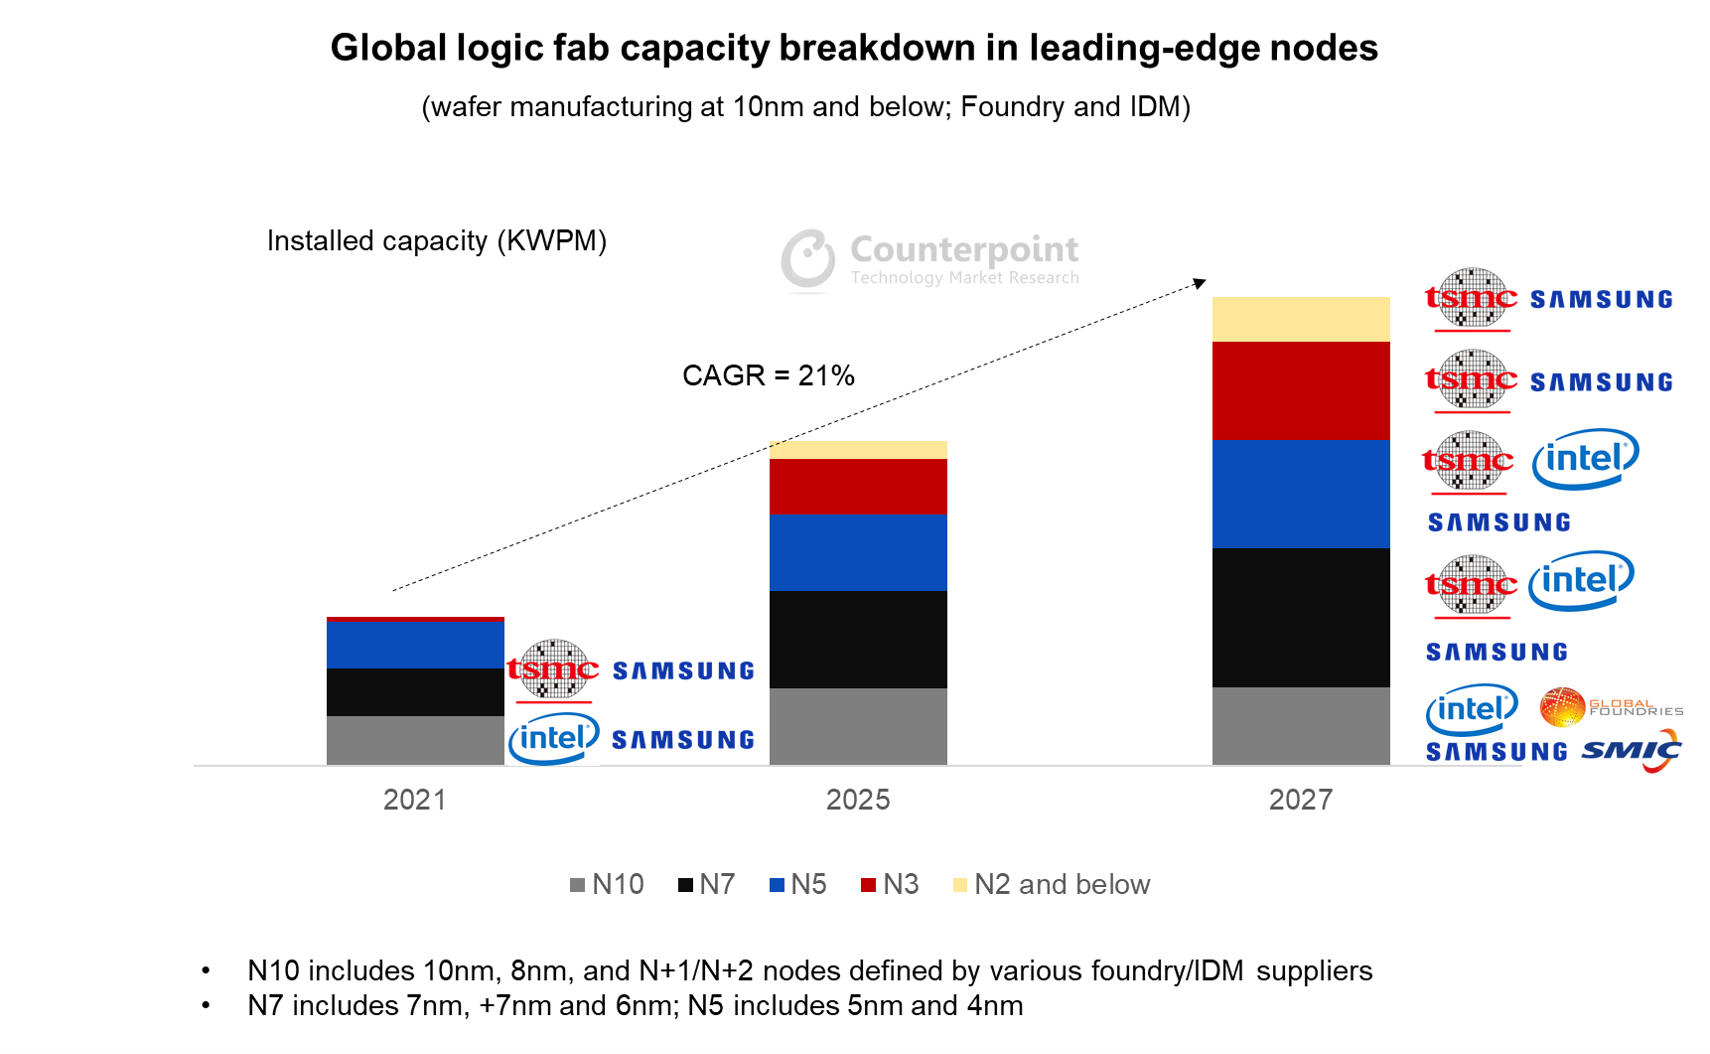 Counterpoint Research Global logic fab capacity breakdown in leading-edge nodes